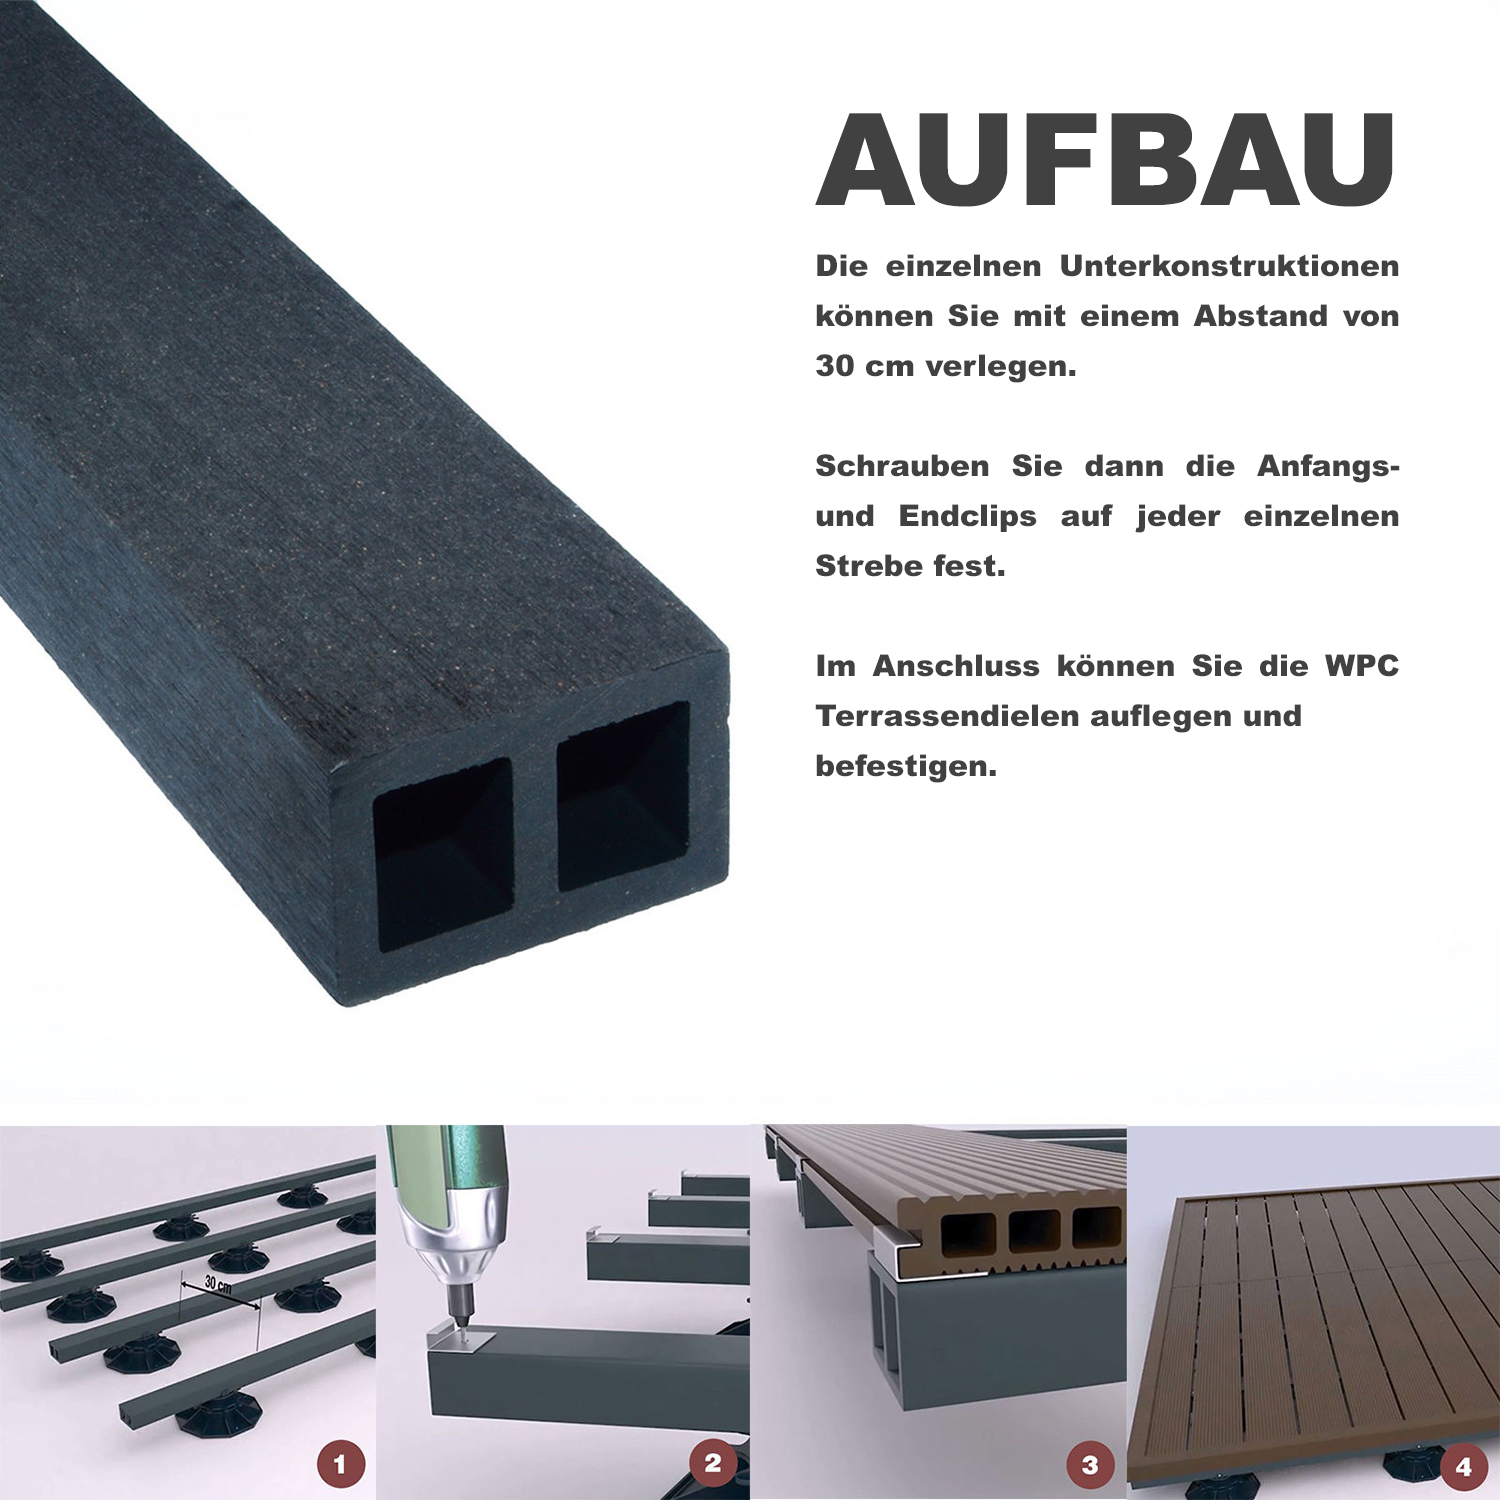 aufbau wpc terrasse gallery of home deluxe komplettset inkl m with aufbau wpc terrasse simple. Black Bedroom Furniture Sets. Home Design Ideas